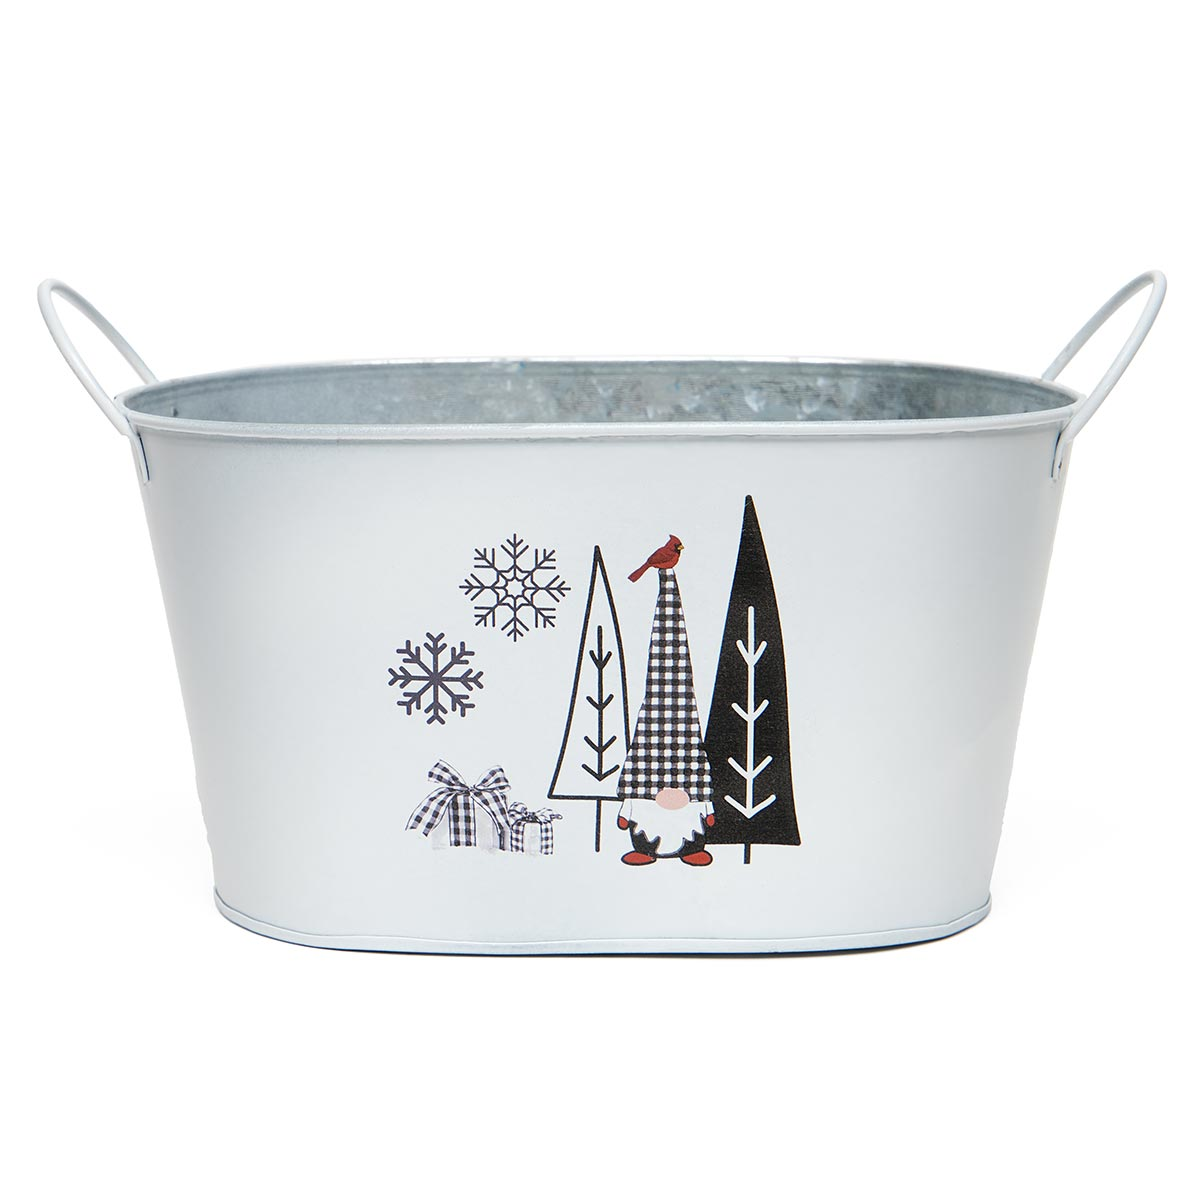 GNOME AND TREES OVAL METAL BUCKET WHITE/BLACK WITH